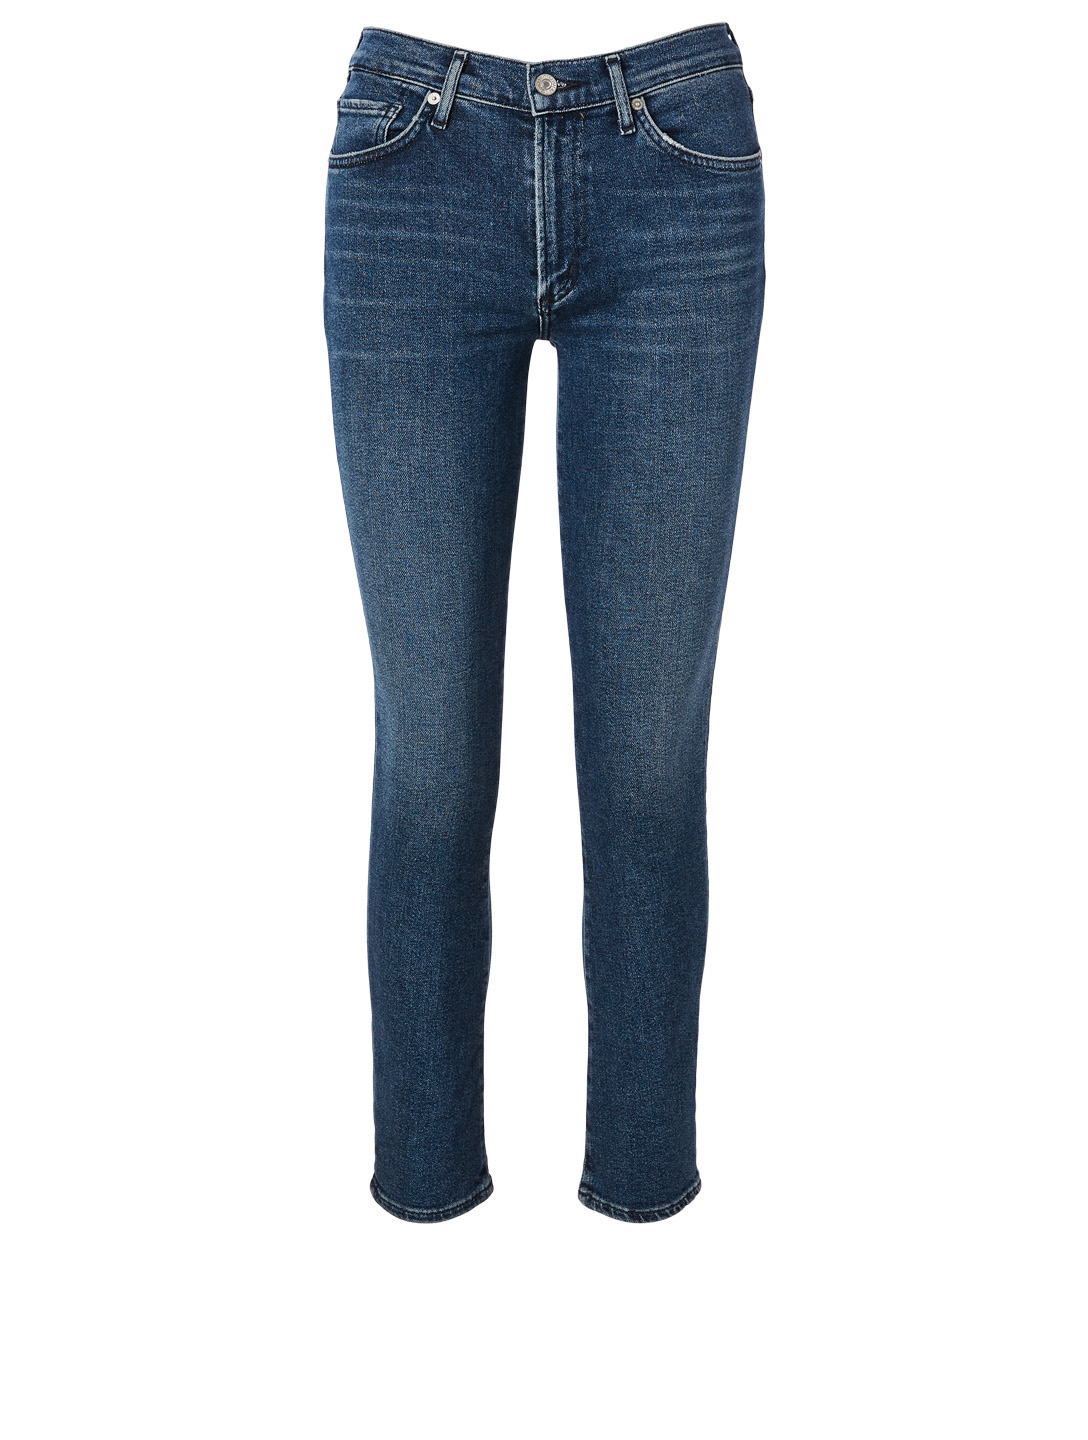 CITIZENS OF HUMANITY Skyla Mid-Rise Cigarette Jeans Women's Blue